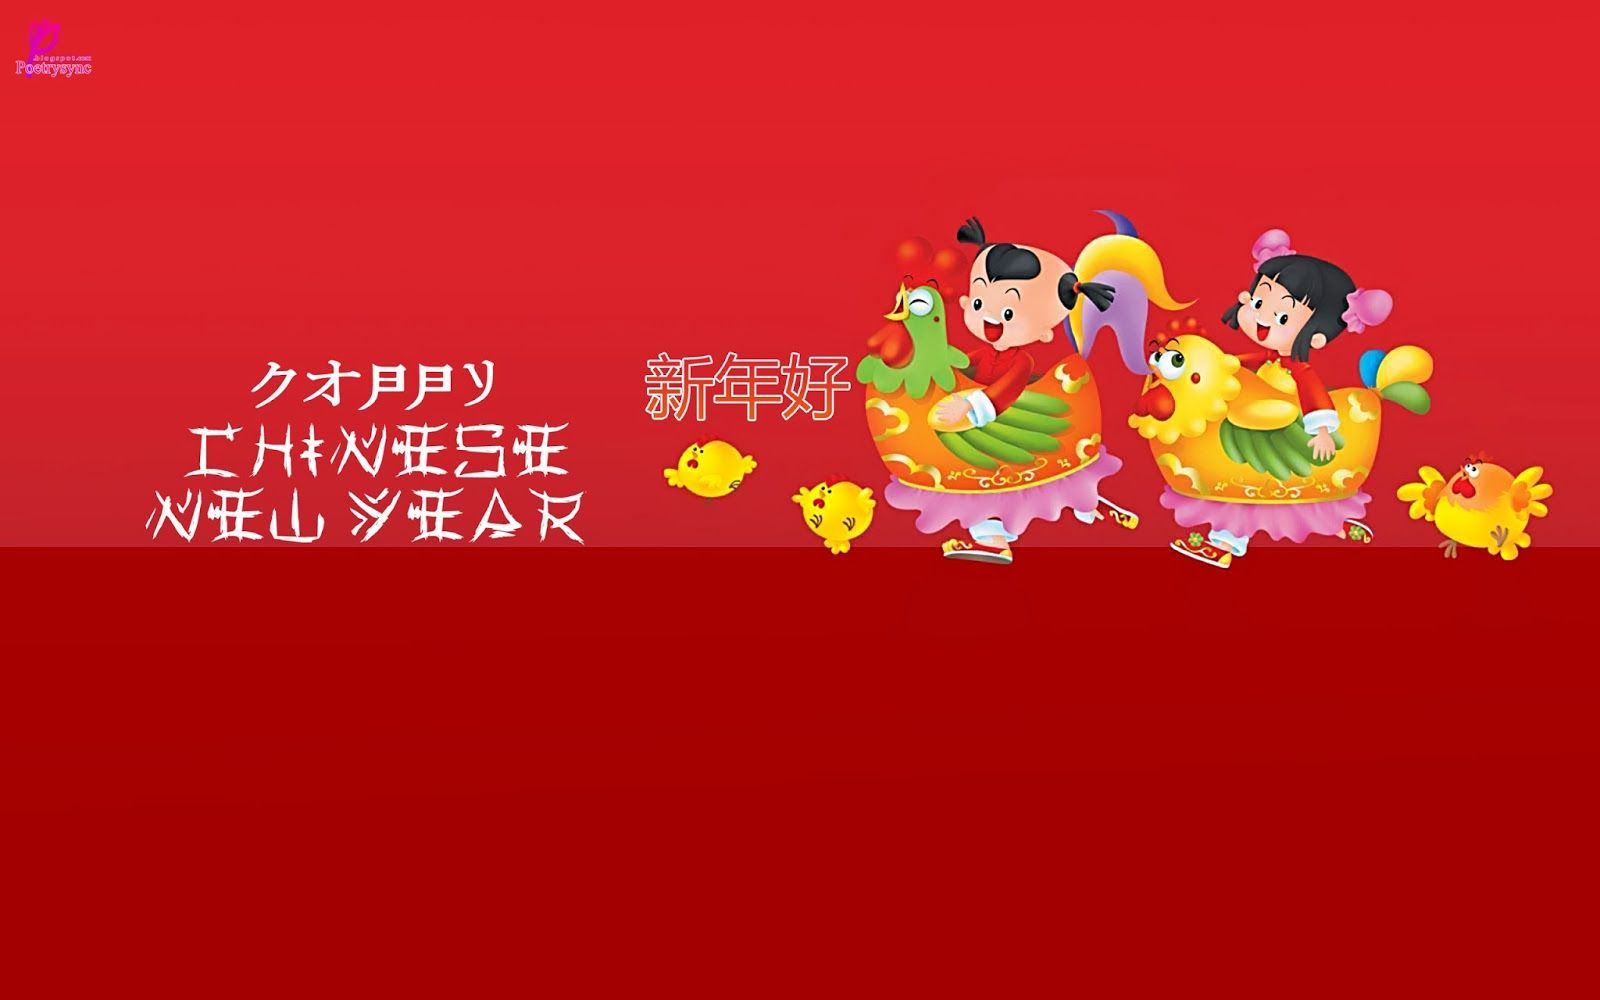 lunar new year hd wallpapers happy chinese new year wishes happy tet holiday greetings happy spring festival card image cartoons happy vietn